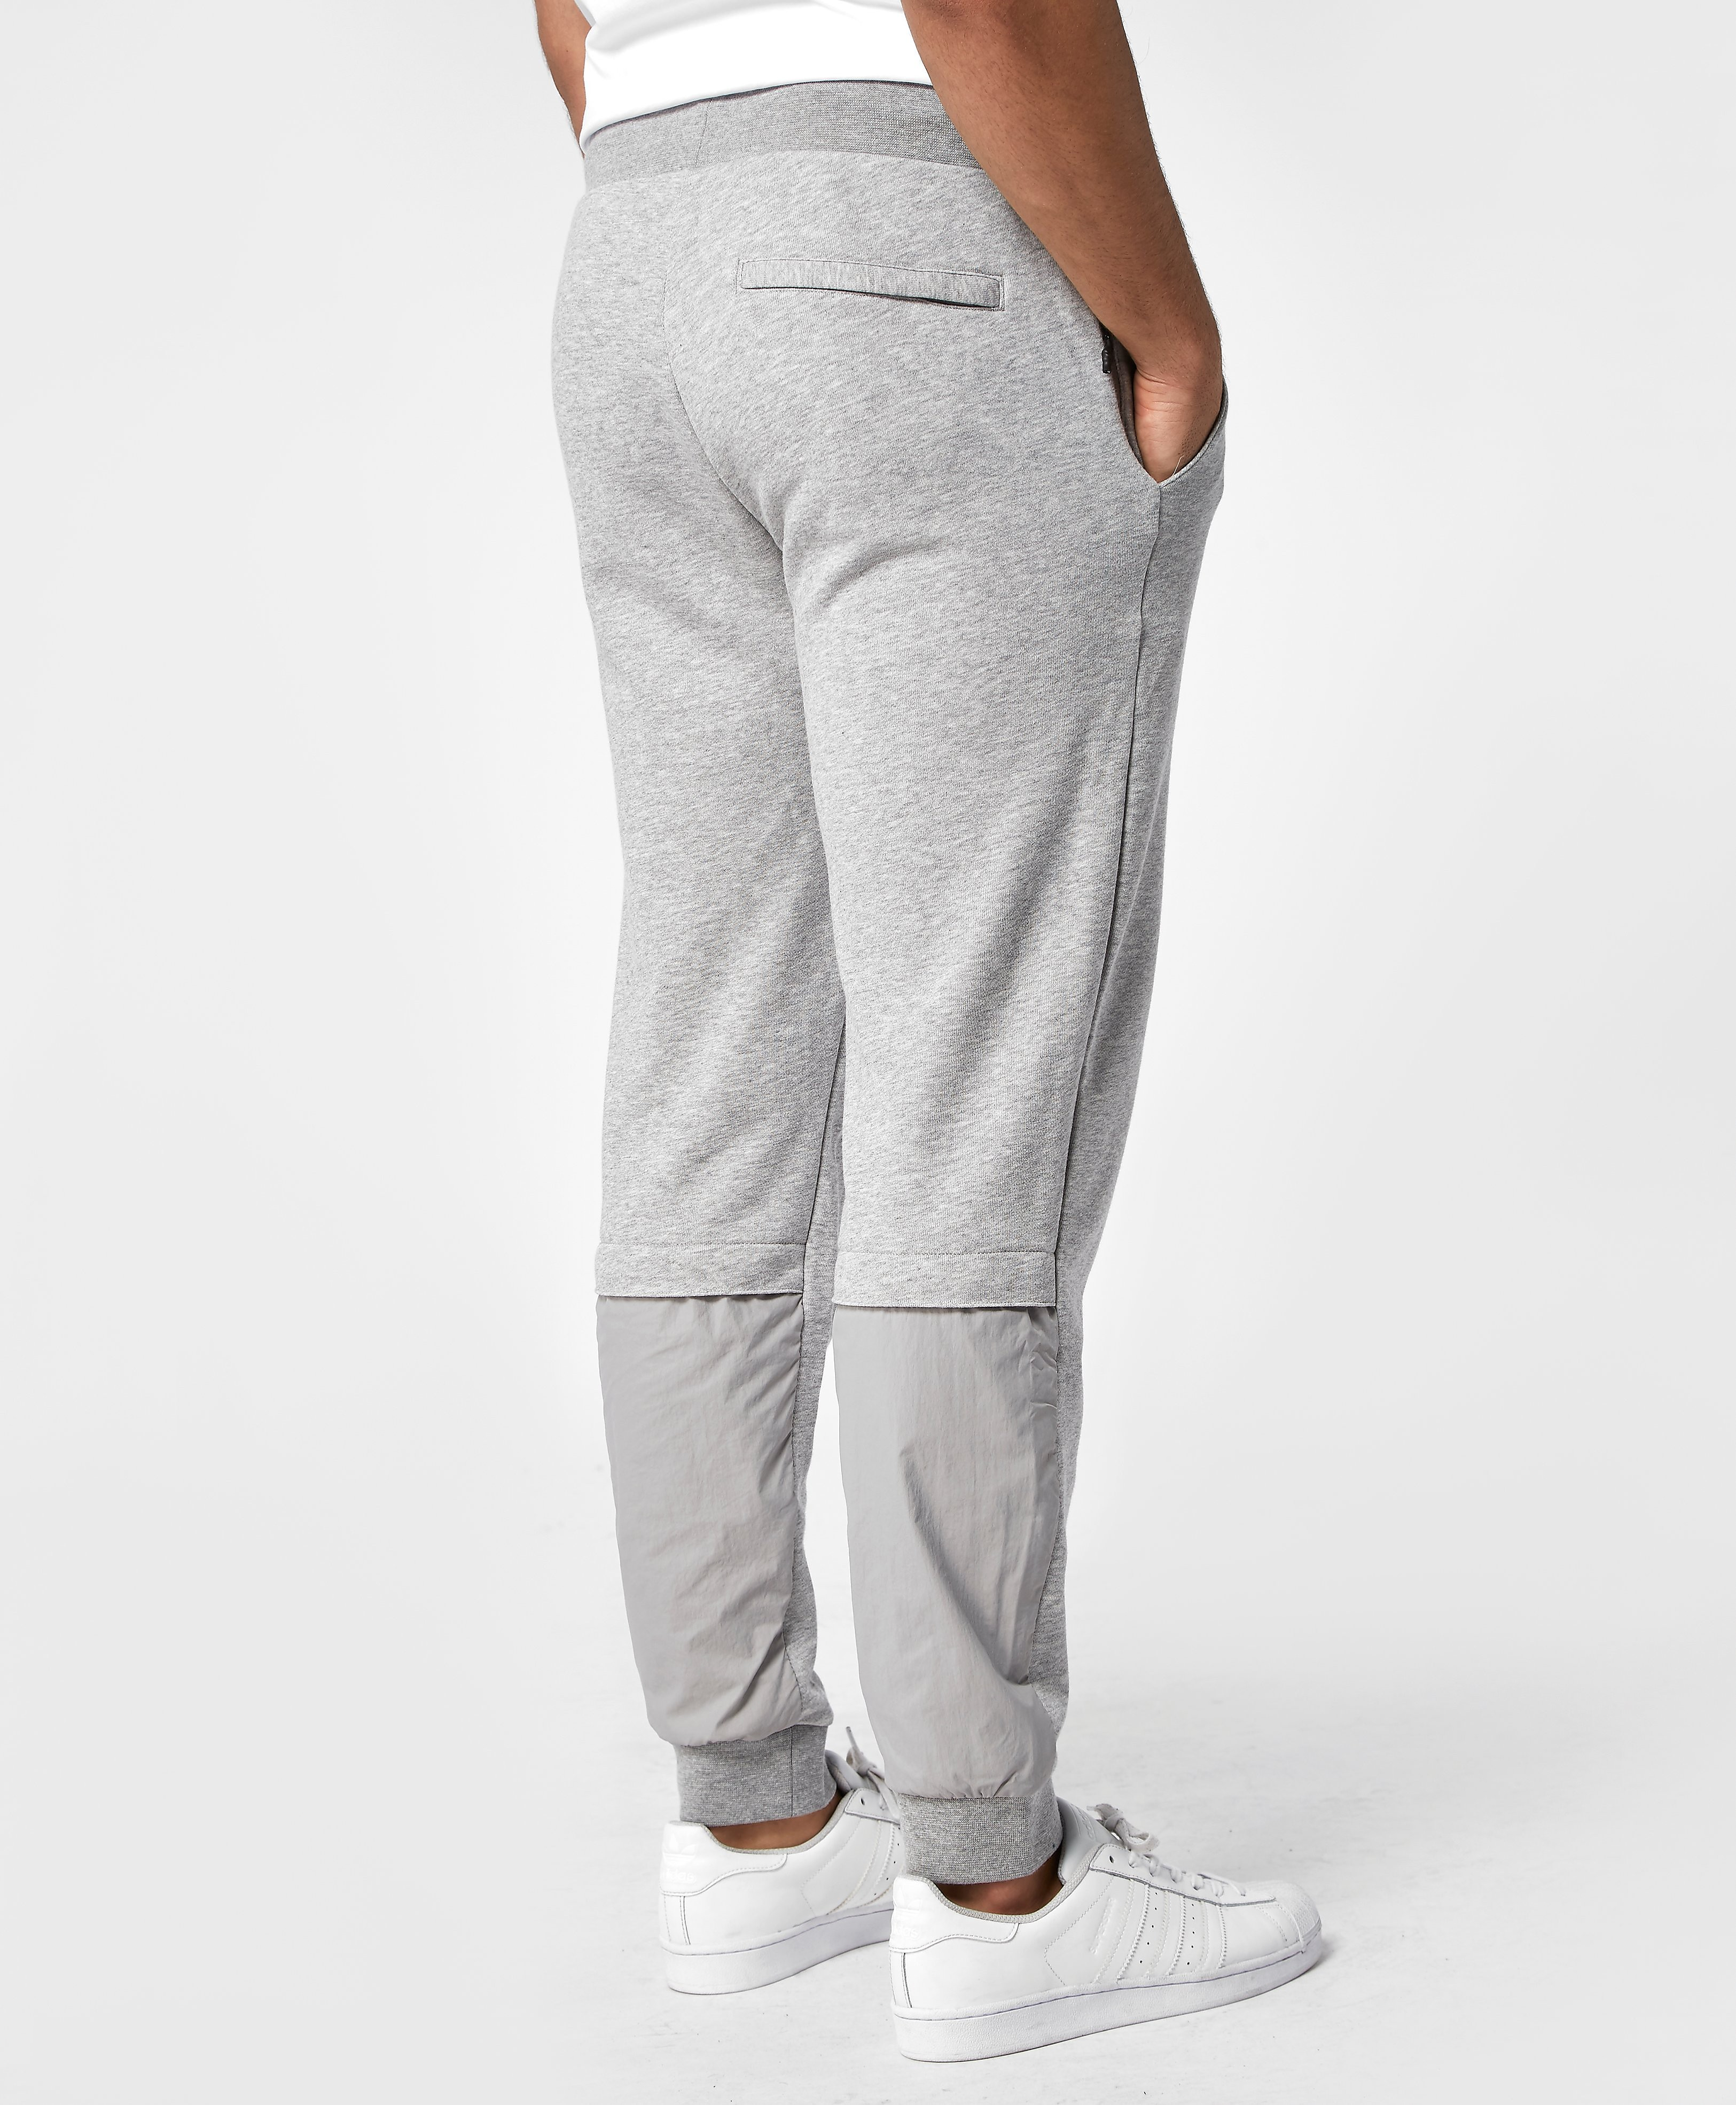 adidas Originals Sport Luxe Cuffed Track Pants